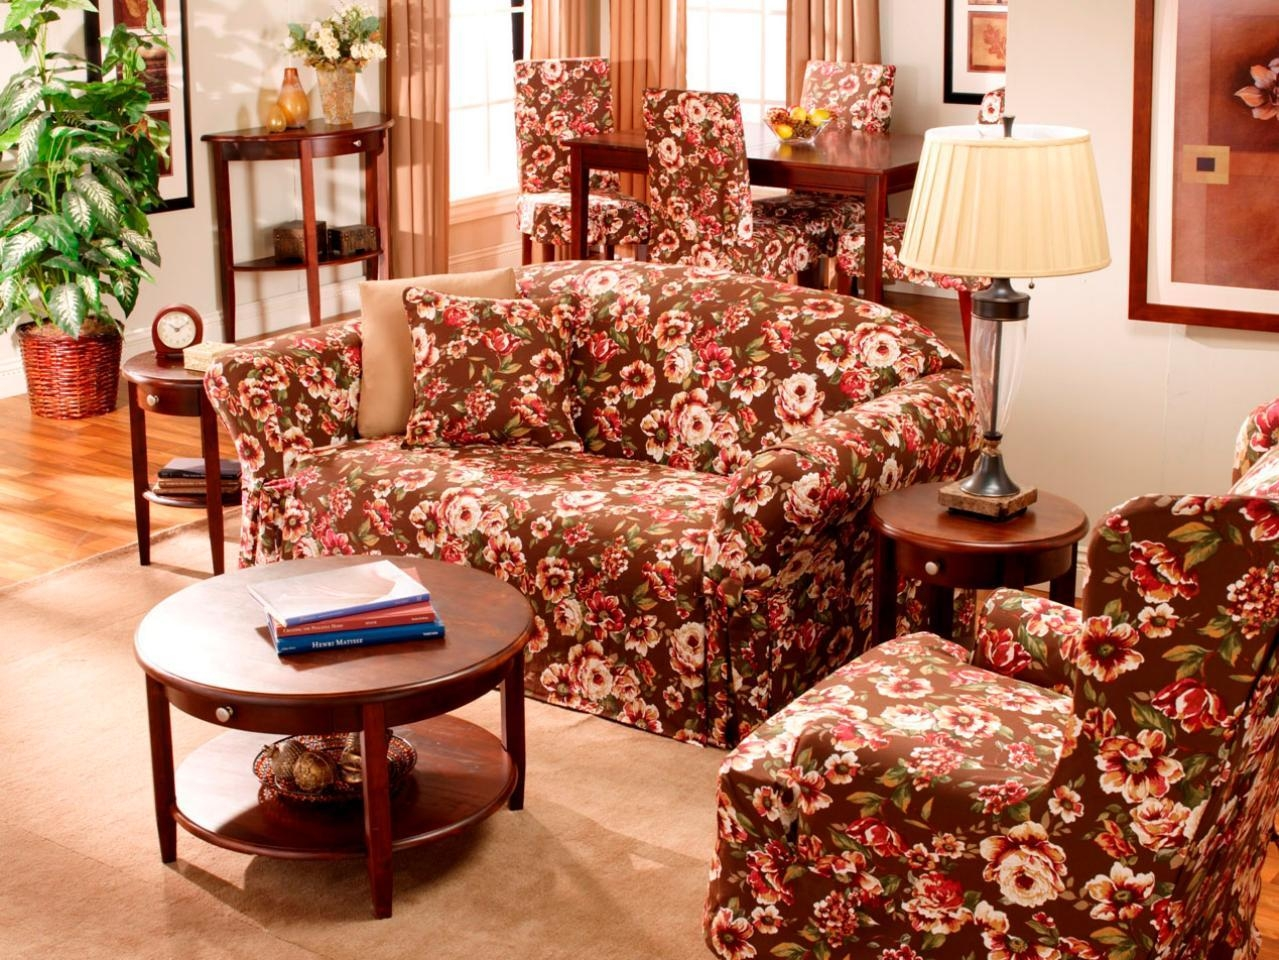 Primitive Living Room With Floral Couch – Carameloffers Throughout Chintz Floral Sofas (Image 20 of 22)